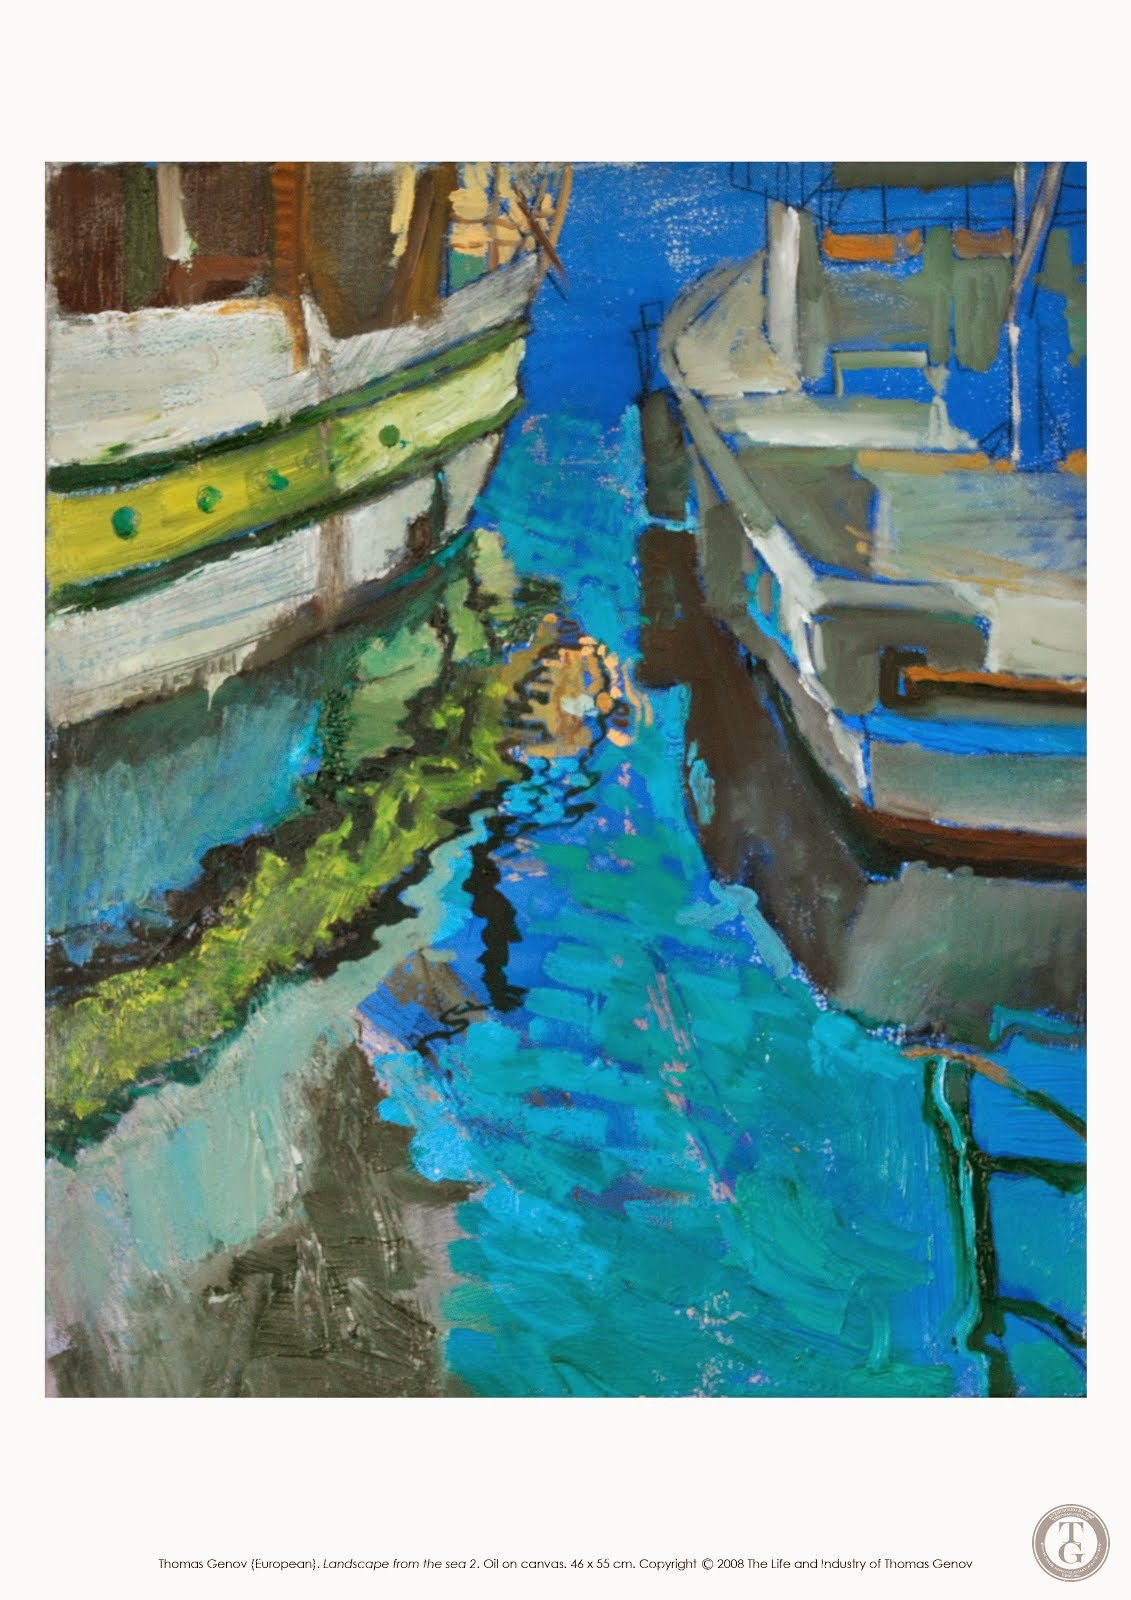 La Mer, Oil on canvas, 46X55 cm, Planner in Nesebar, 2003